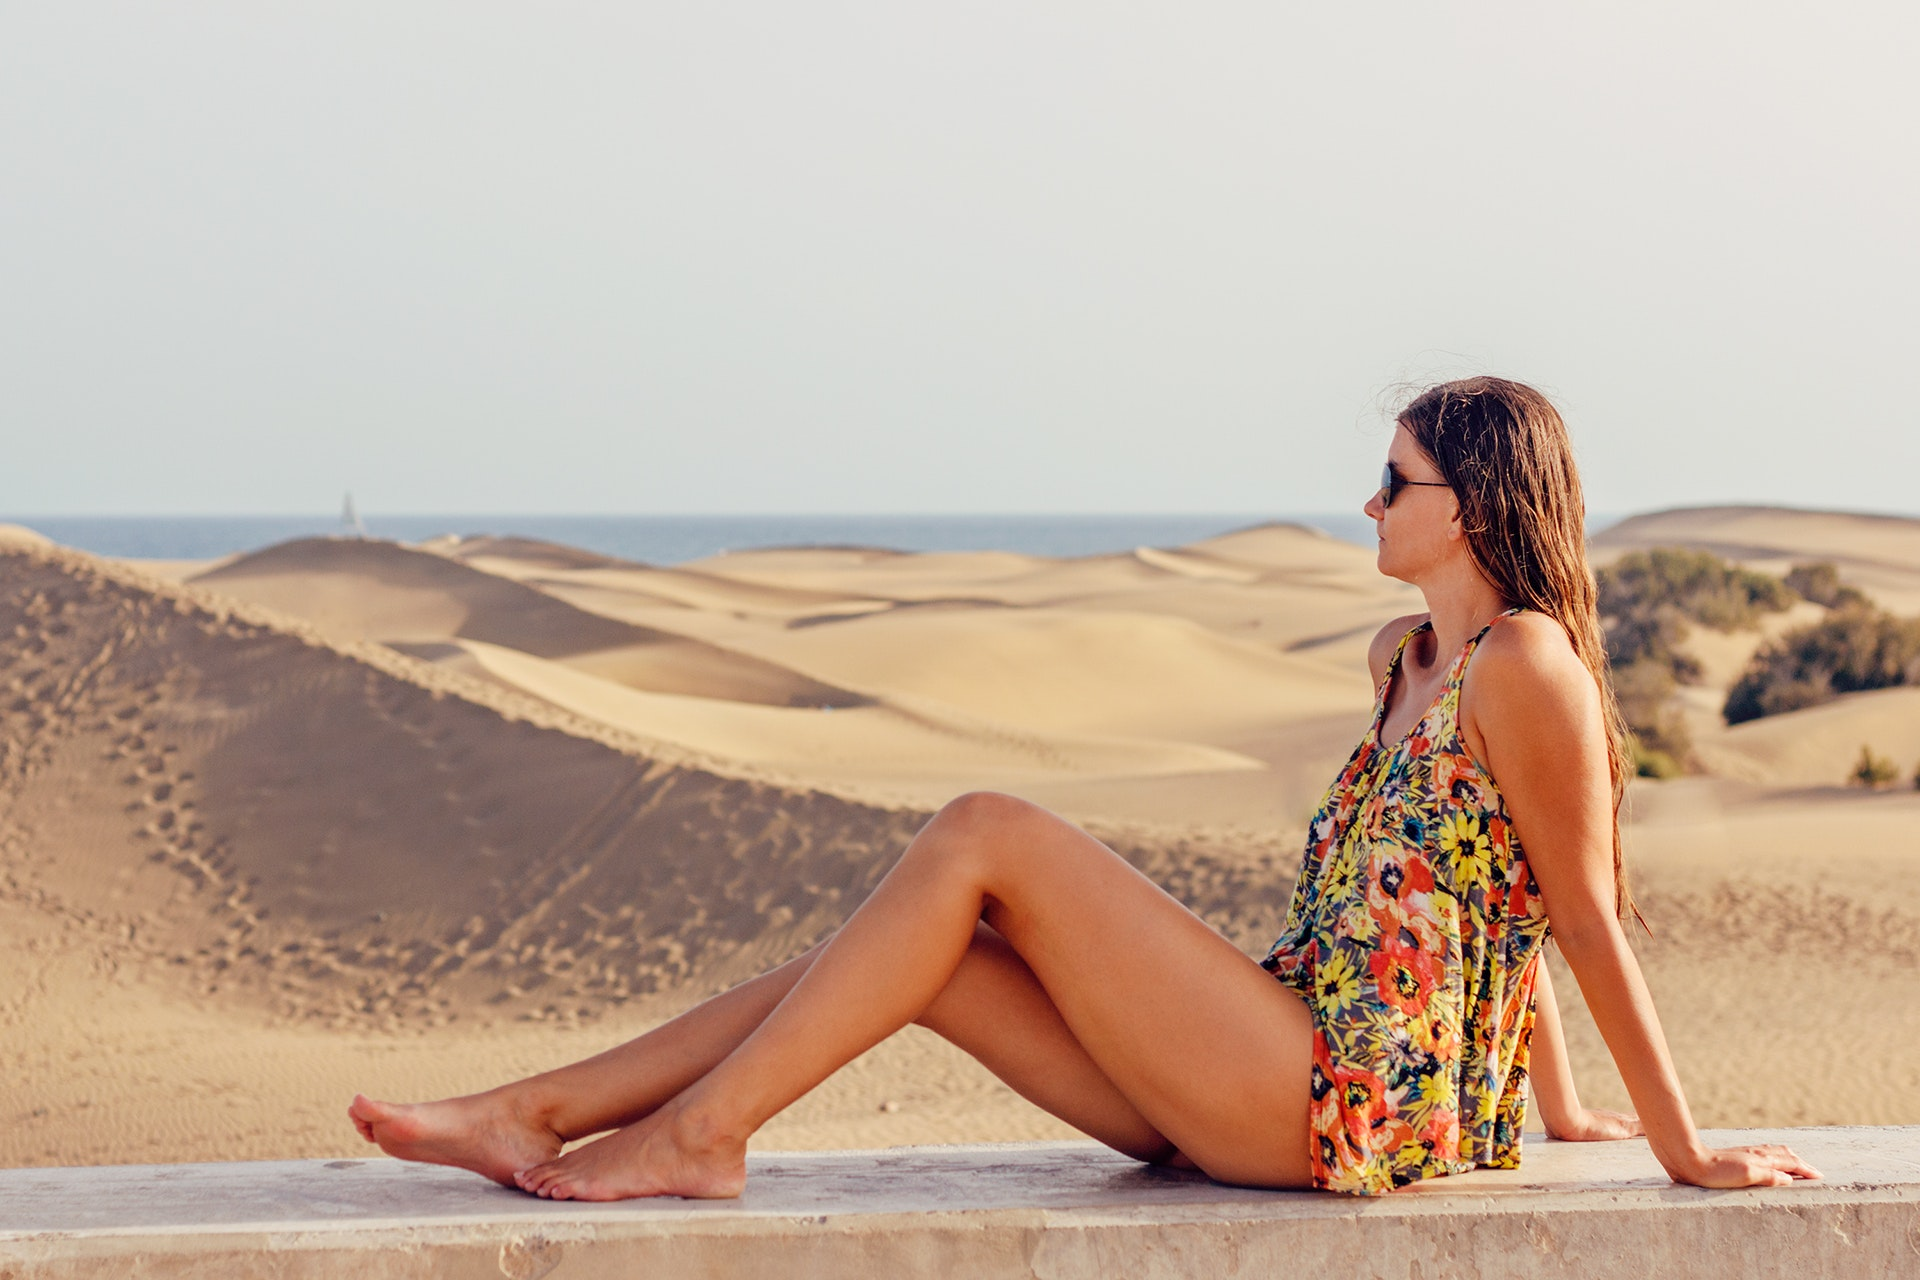 Woman Sitting on Sand at Beach Against Sky, Relaxing, Young, Woman, Water, HQ Photo